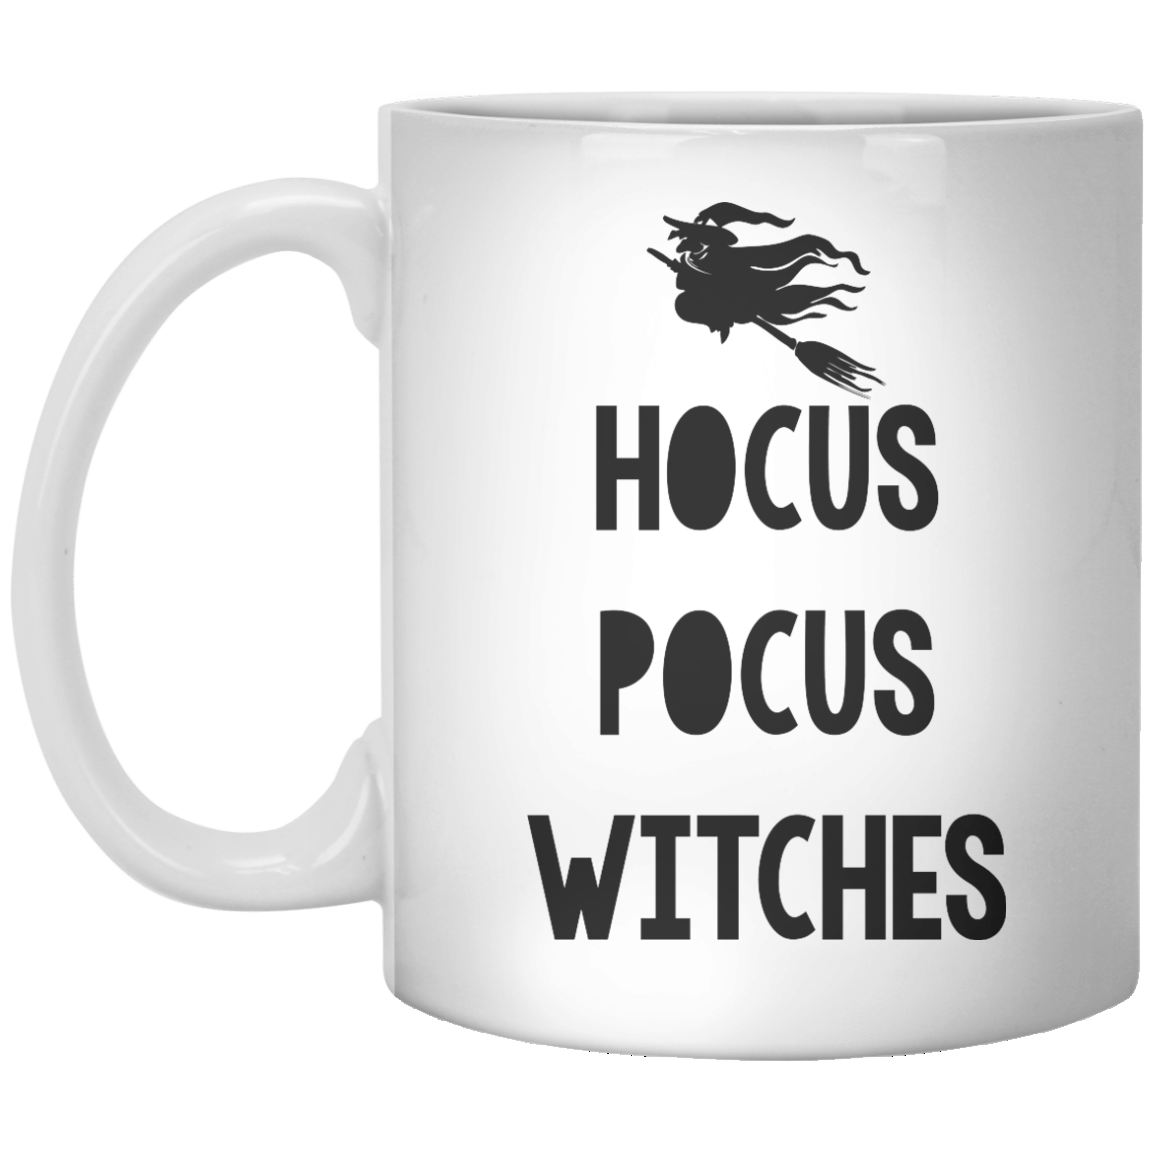 Hocus Pocus Witches MUG - Shirtoopia